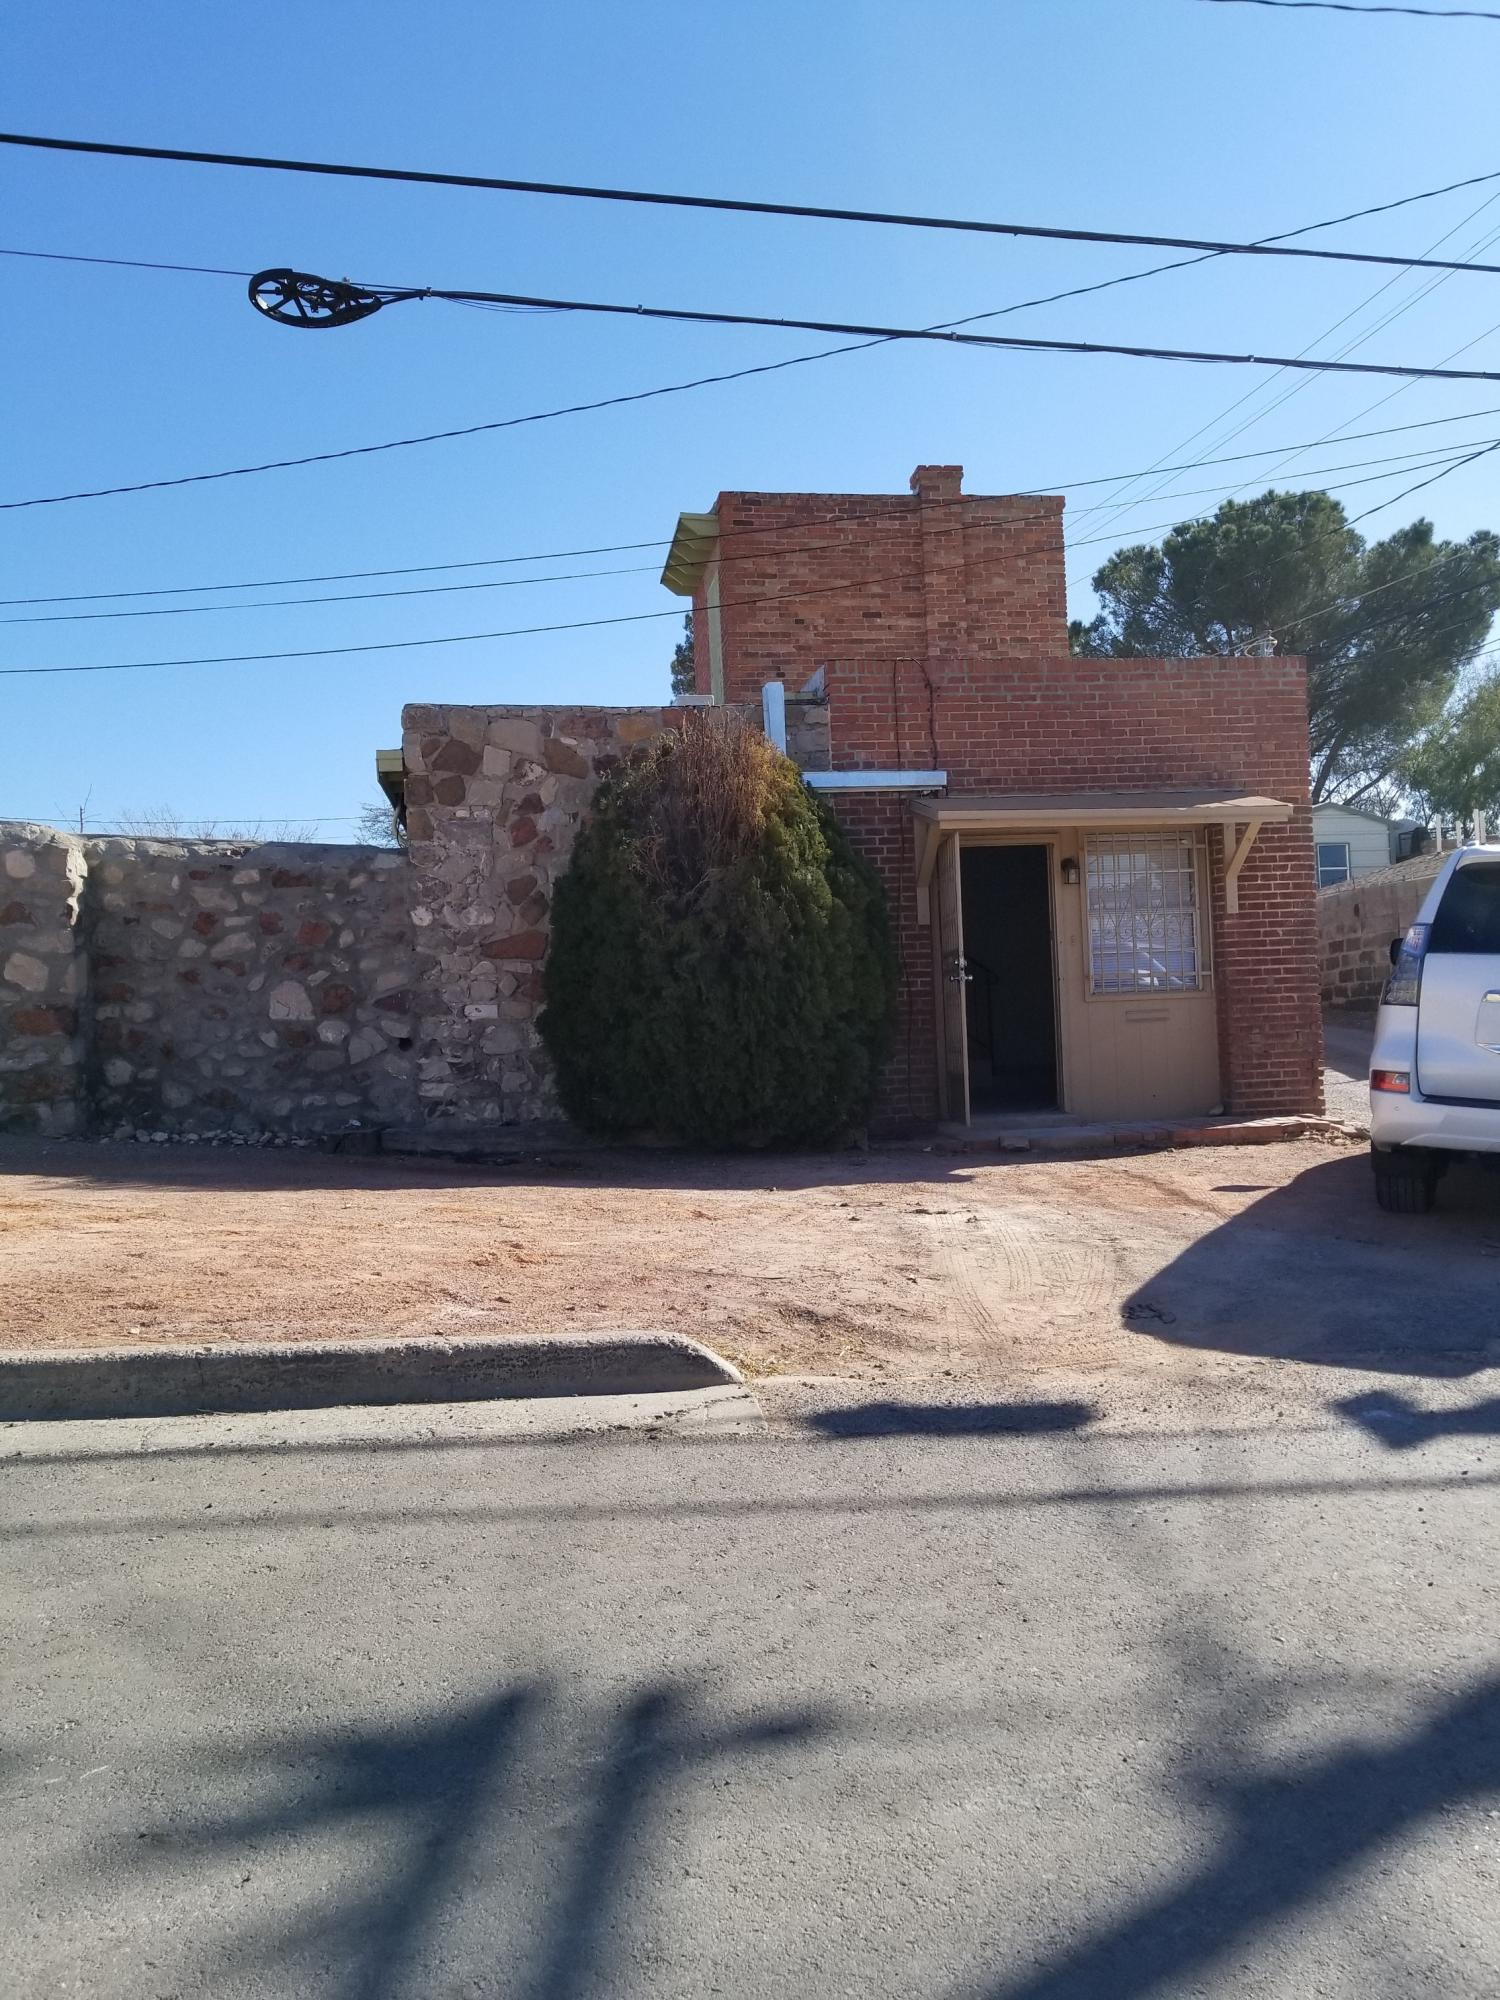 2317 NORTH CAMPBELL Street, El Paso, Texas 79902, 1 Bedroom Bedrooms, ,1 BathroomBathrooms,Residential Rental,For Rent,NORTH CAMPBELL,839641